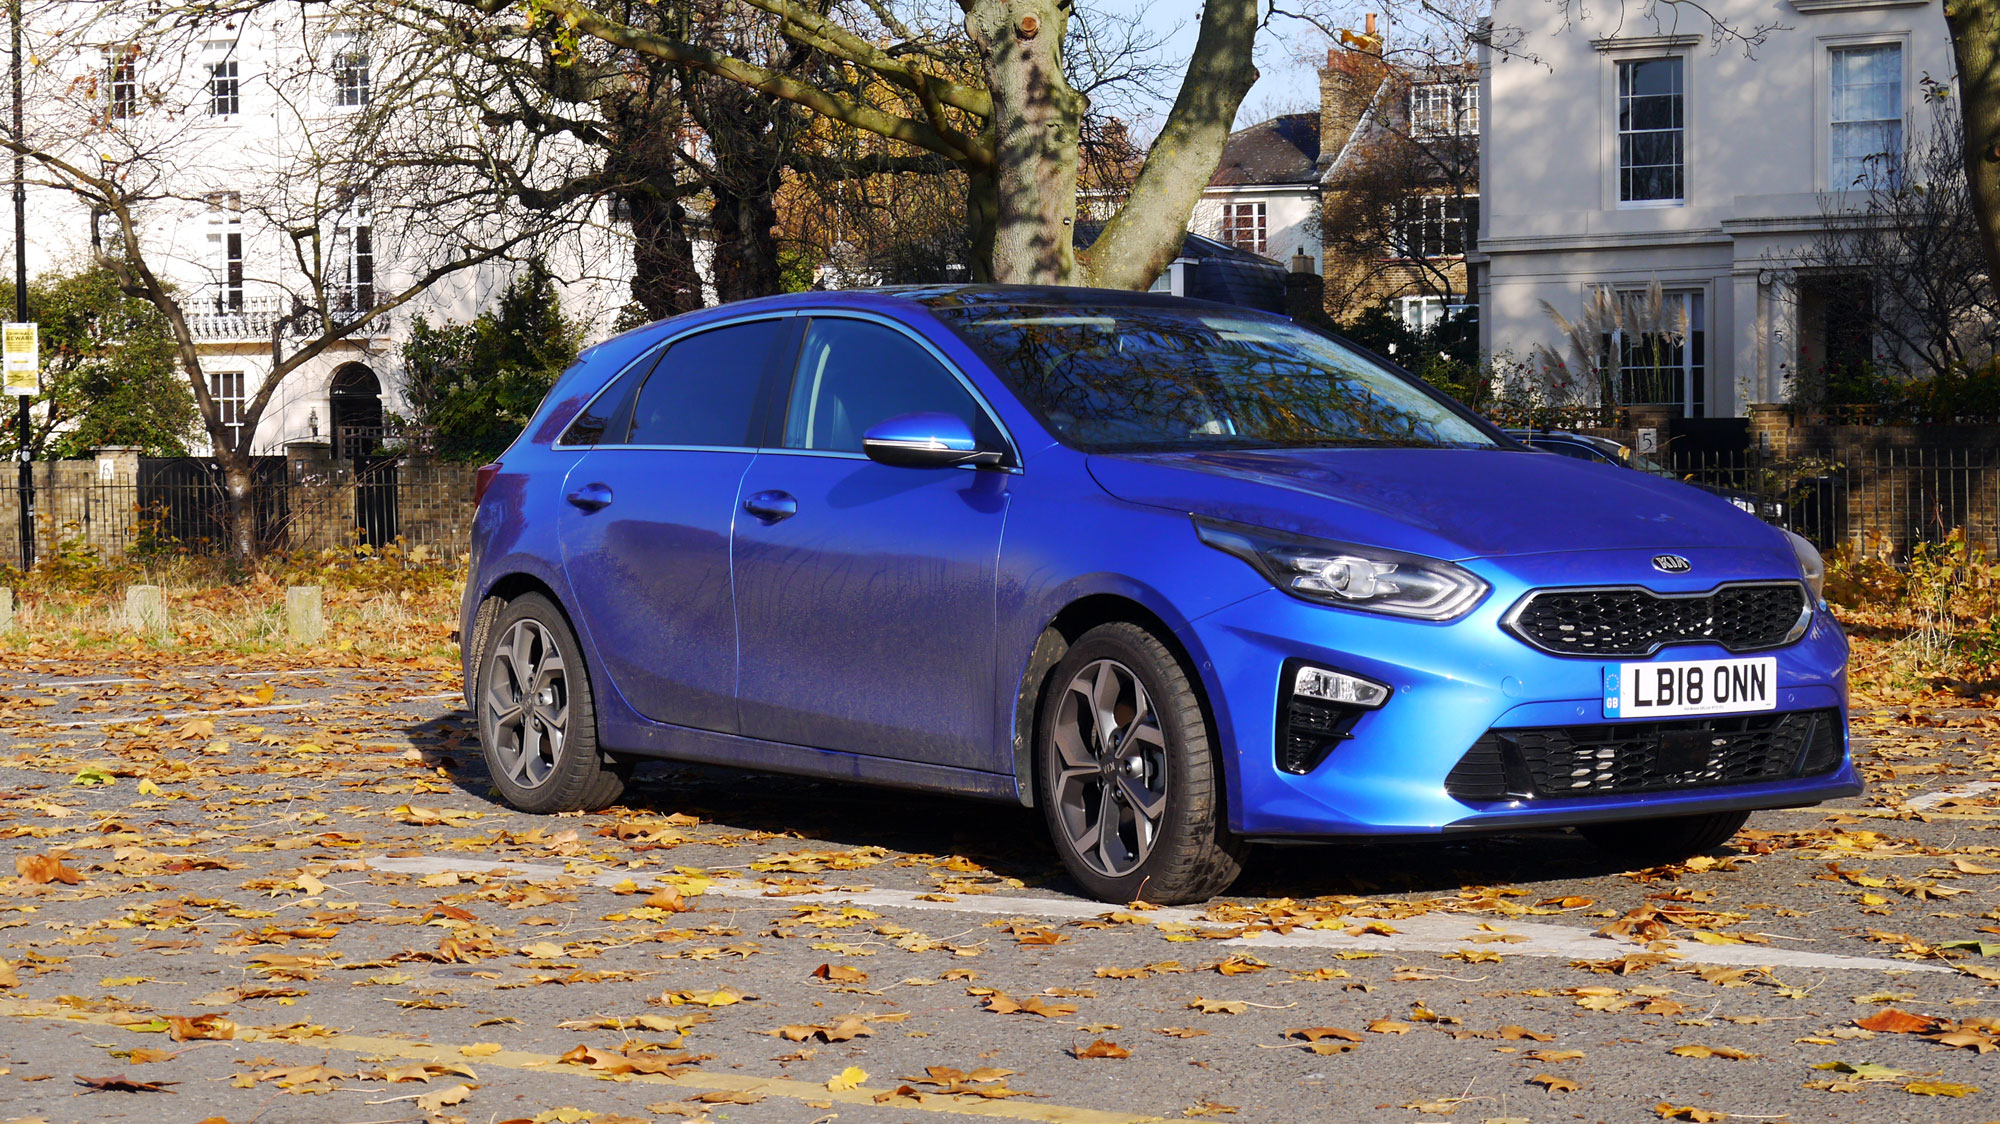 Kia Ceed First Edition: the car for tech fans on a budget